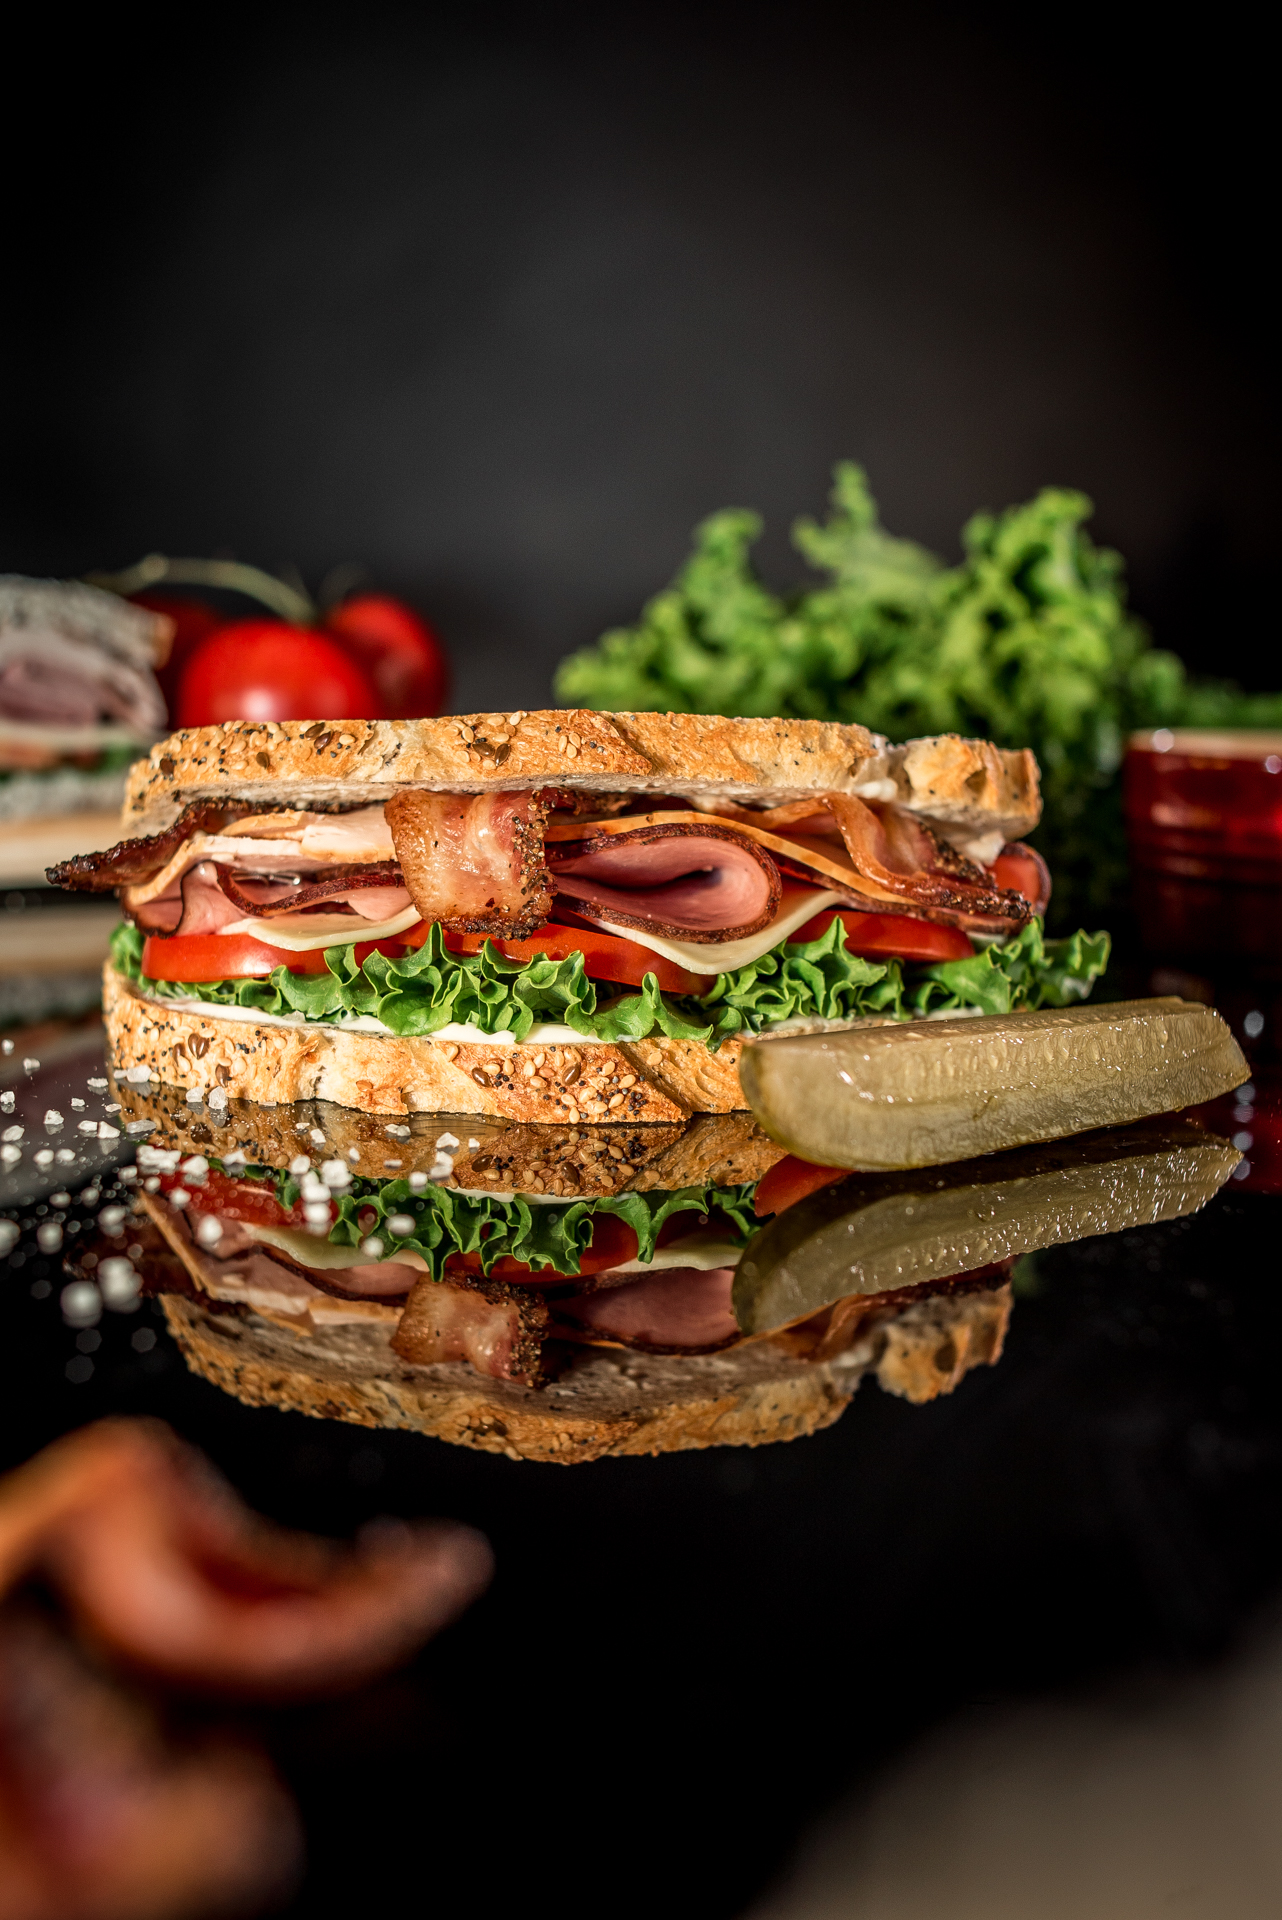 Taylor Vieger Food Photography 2019 Sandwich.jpg